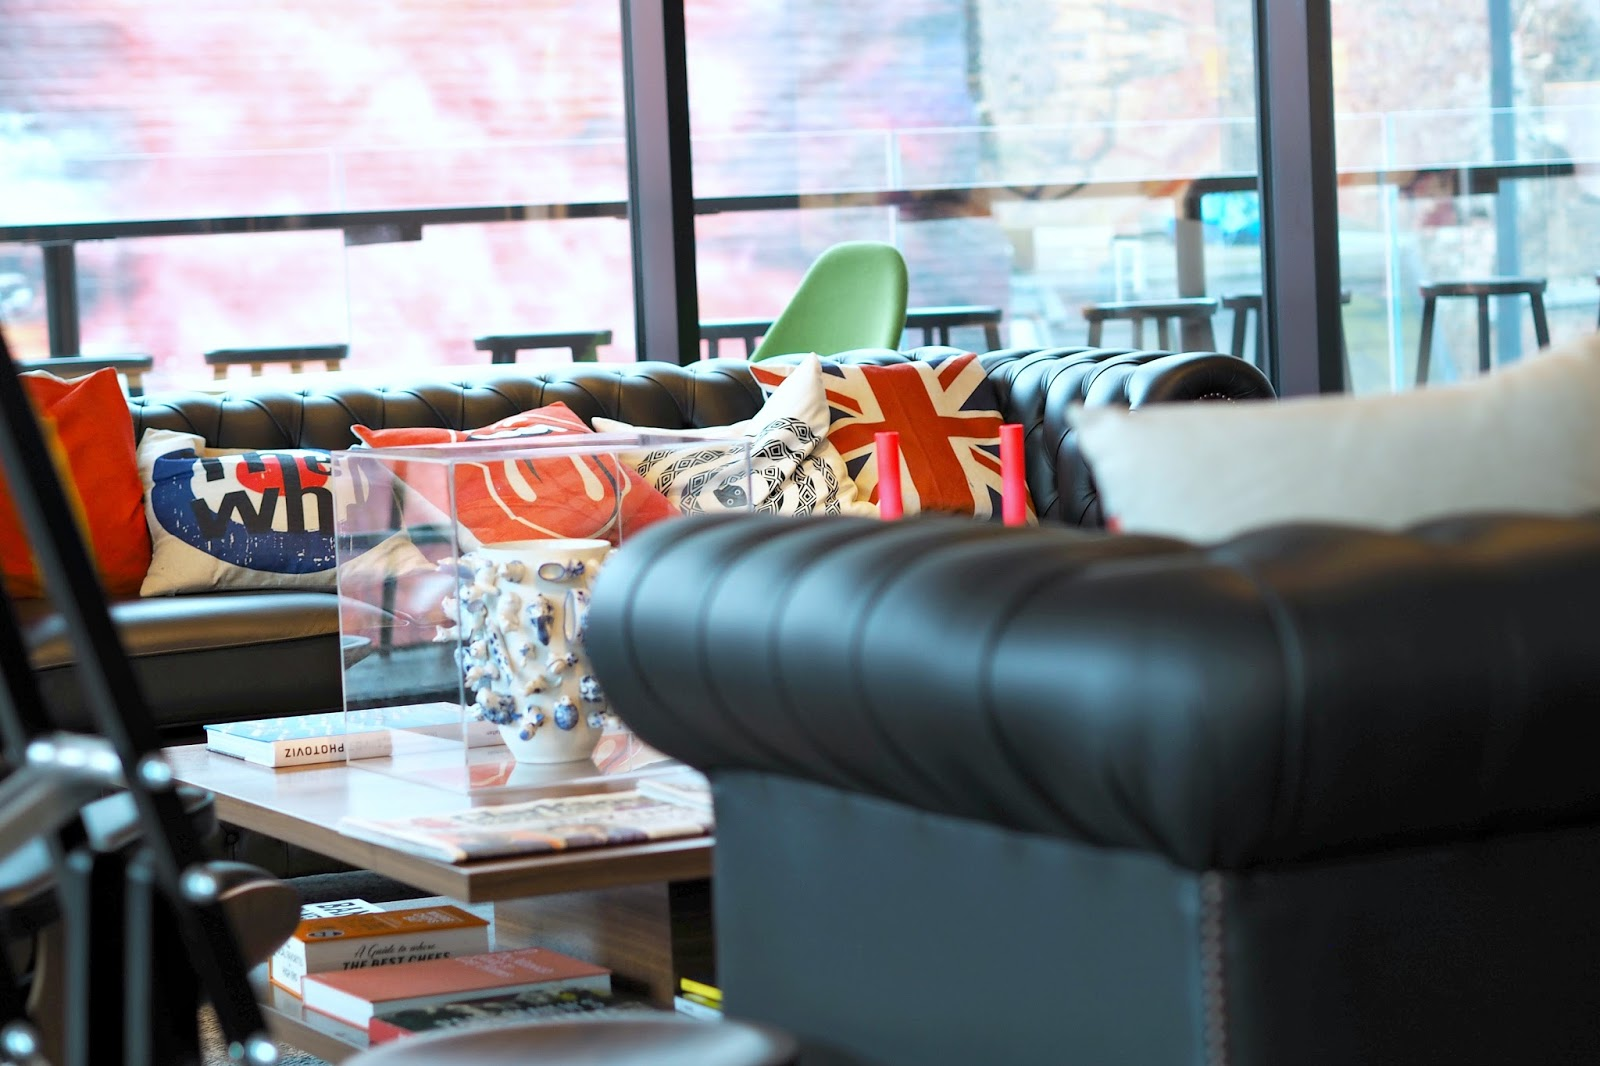 citizenm shoreditch, hotel review by blogger